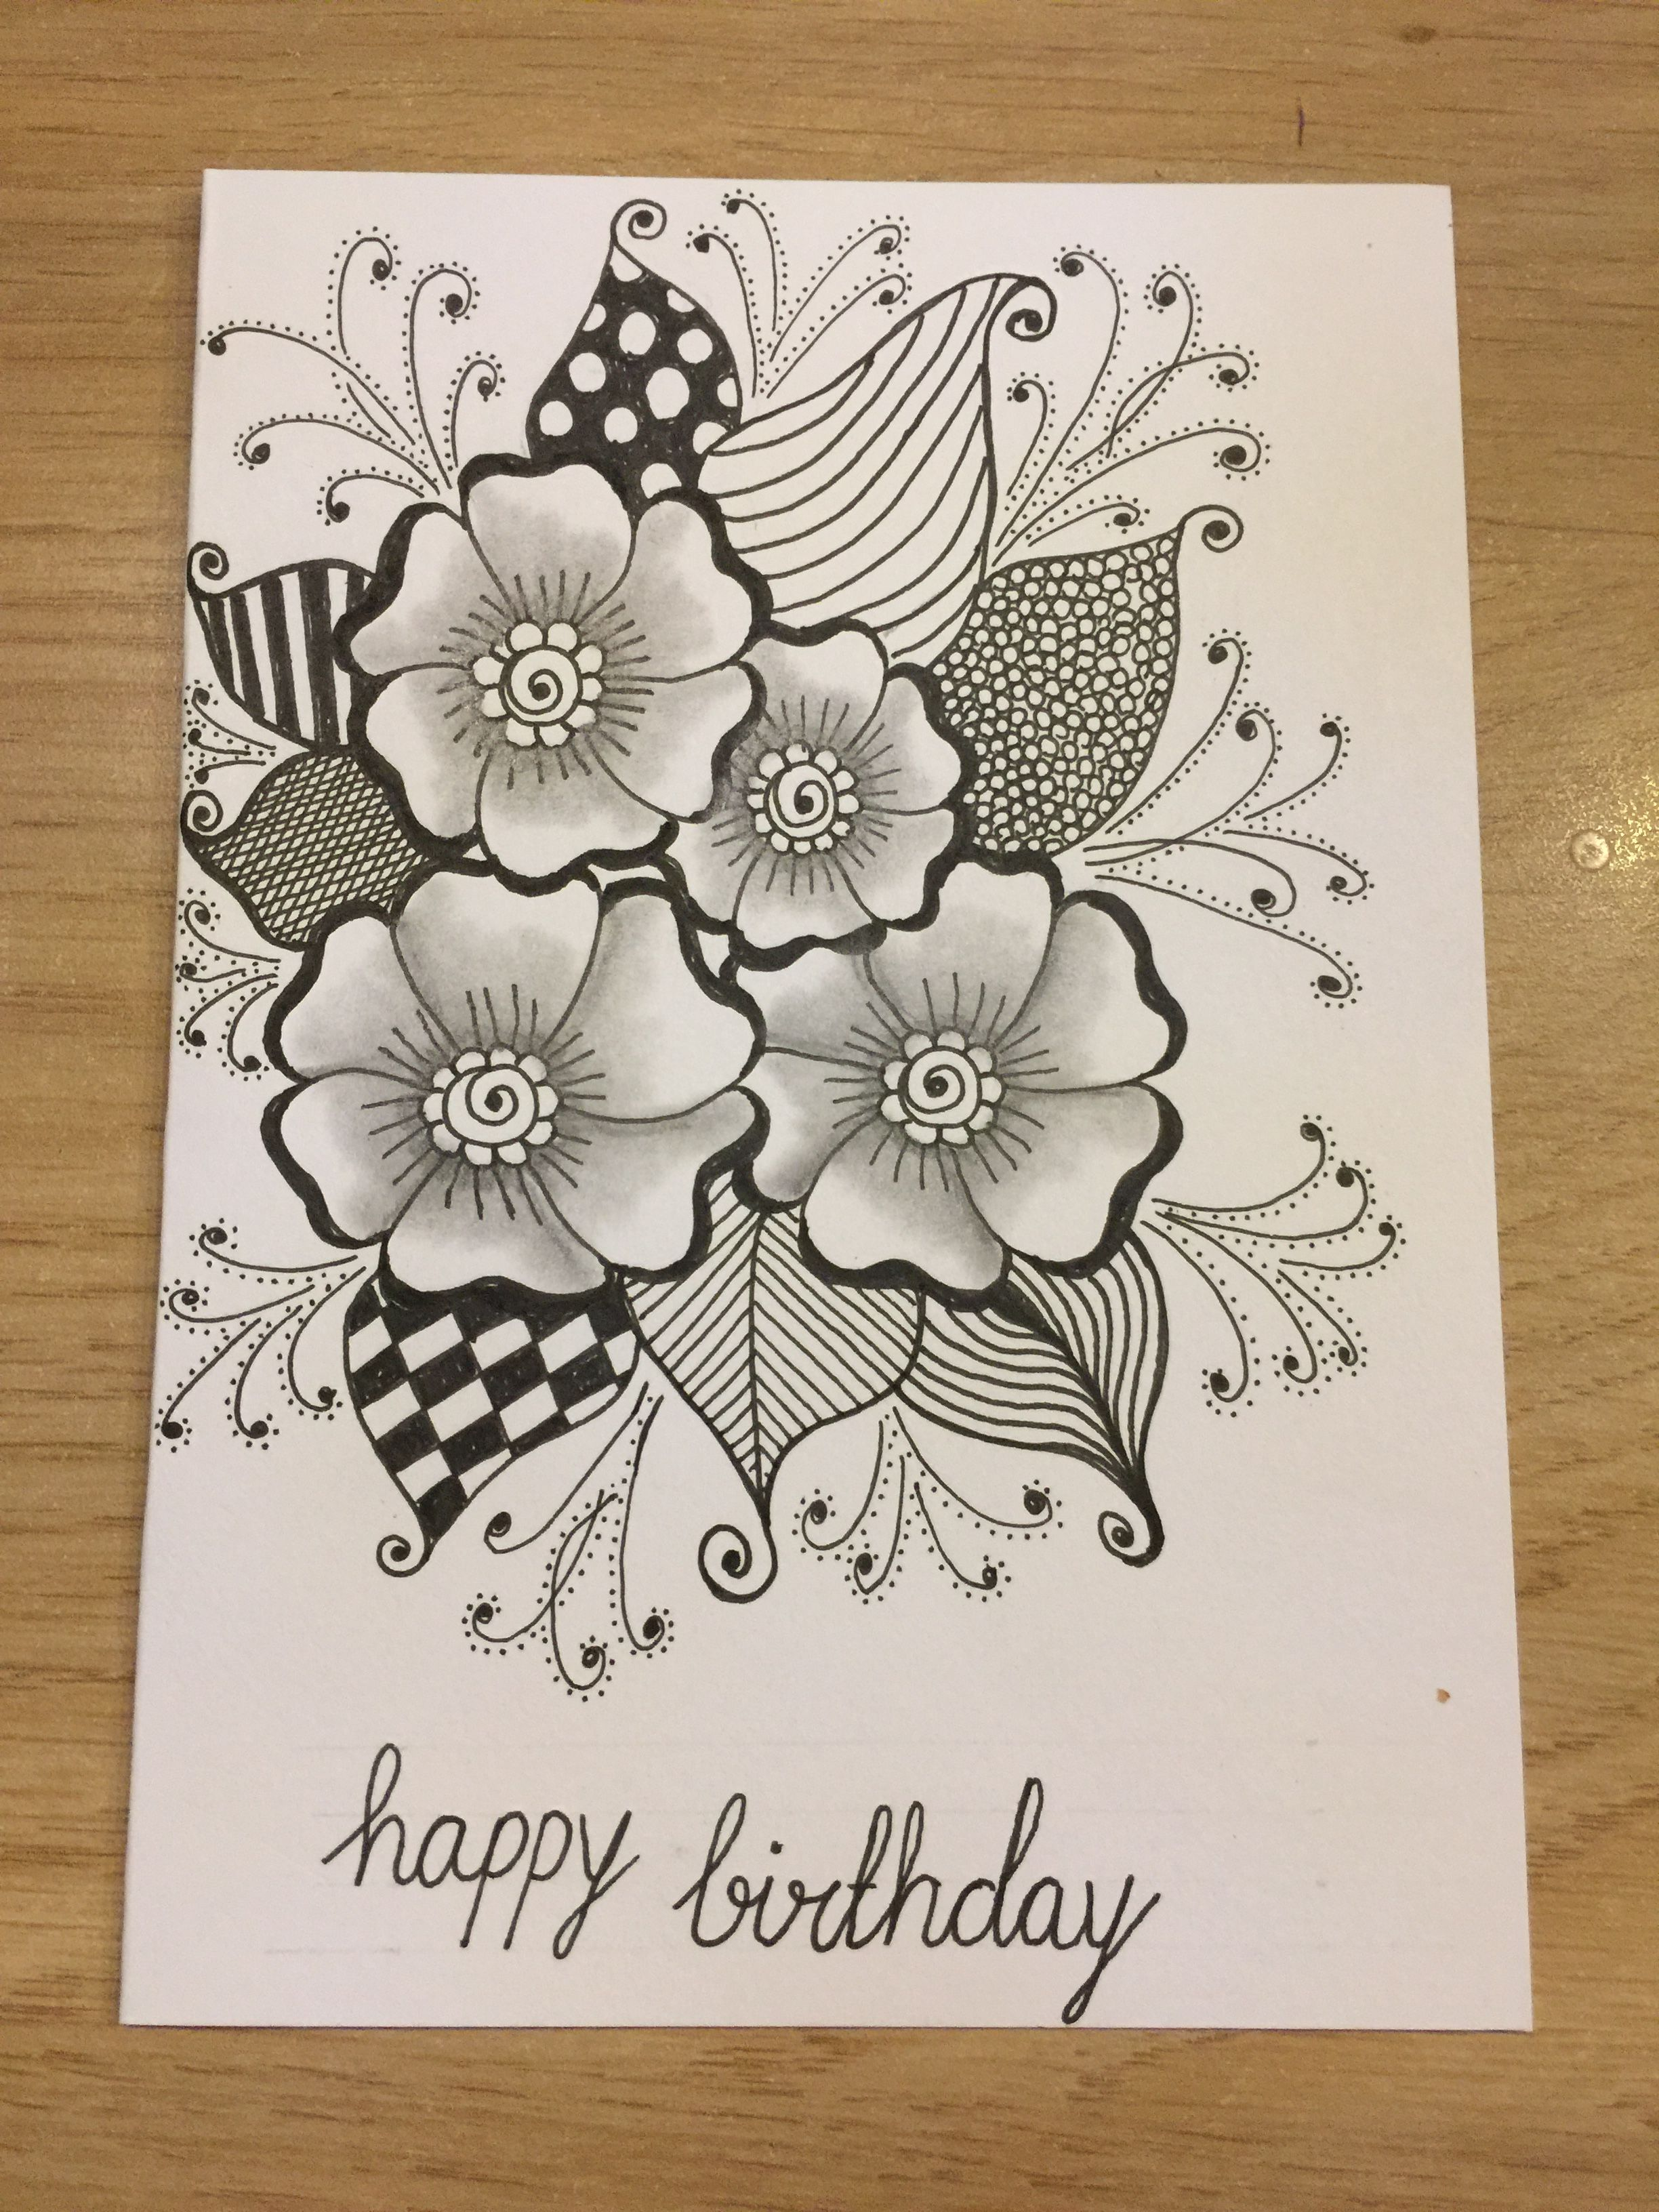 Pencil drawings · zentangle card create birthday card birthday card design mandala motif mandala art